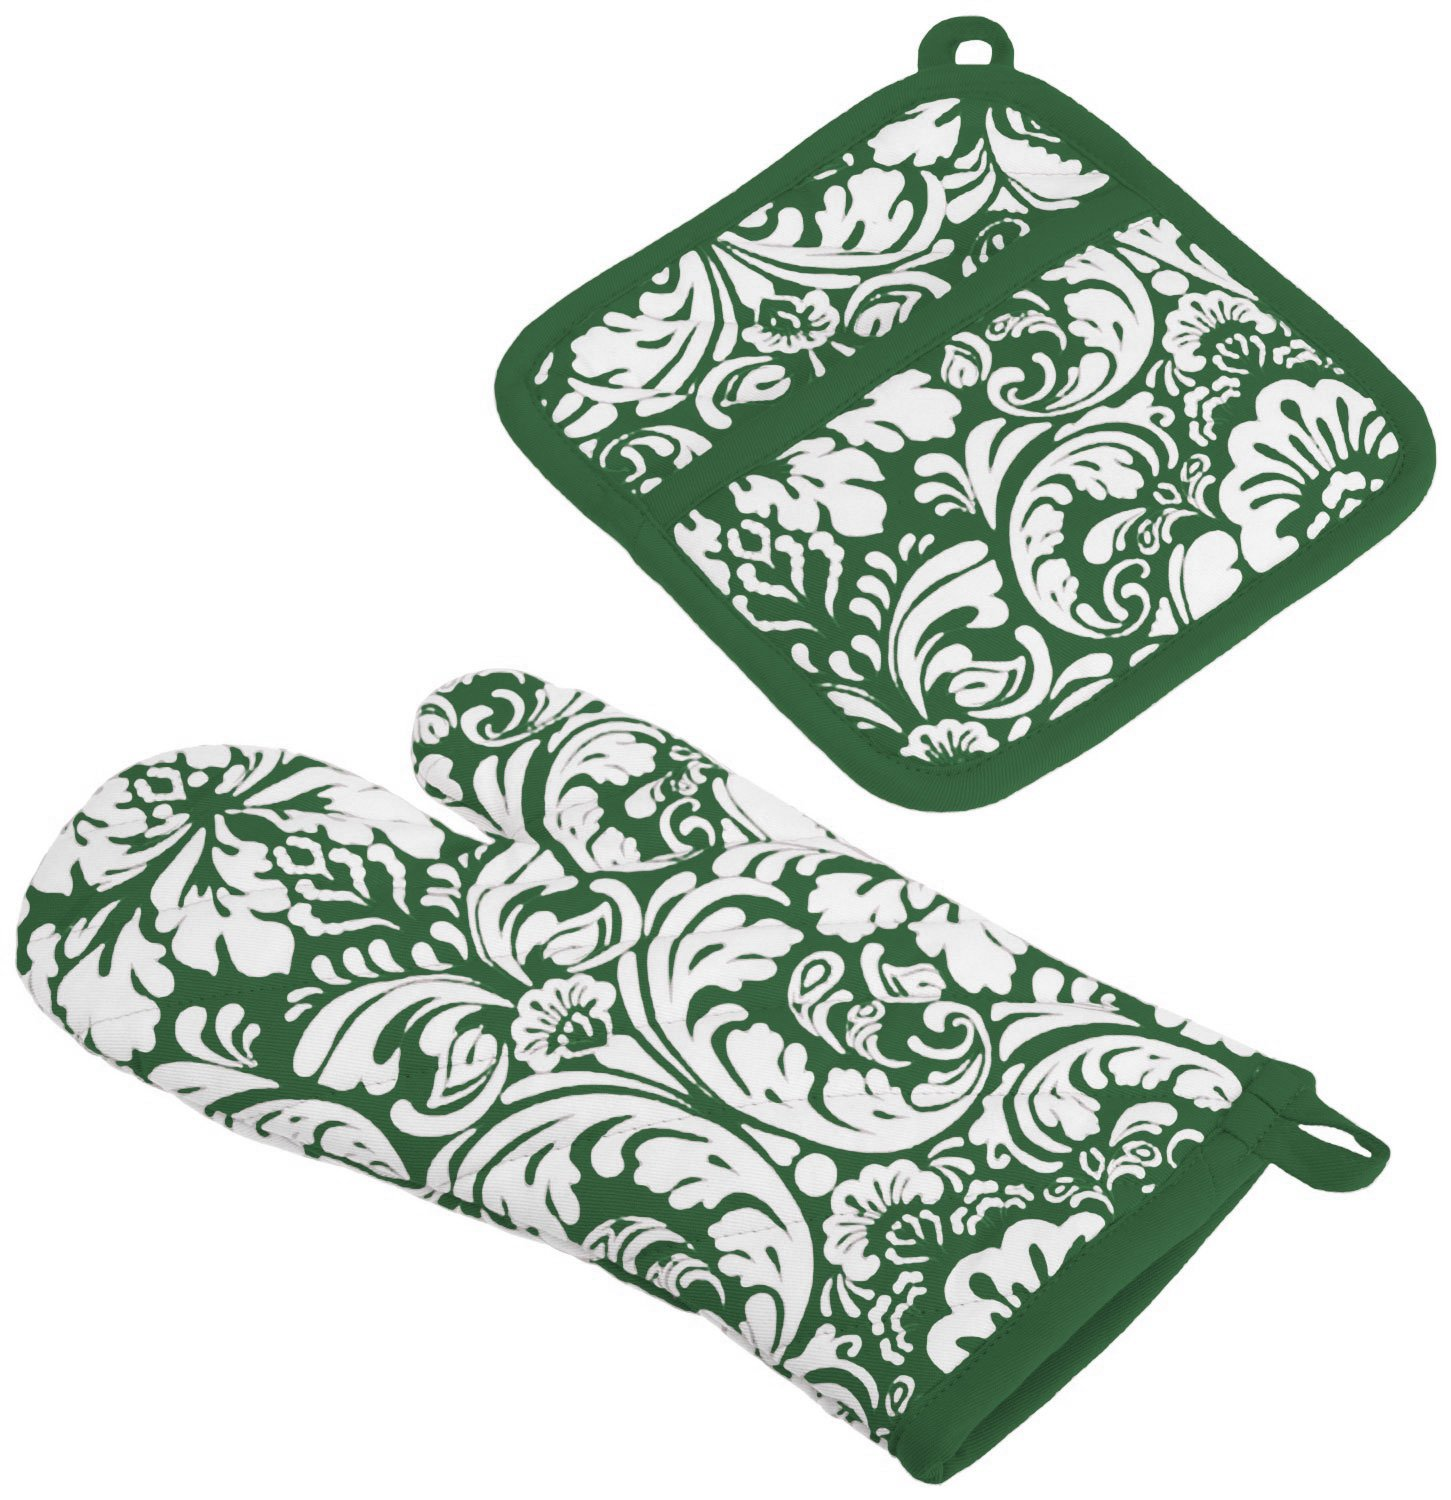 """DII Cotton Damask Oven Mitt 12 x 6.5"""" and Pot Holder 8.5 x 8"""" Kitchen Gift Set, Machine Washable and Heat Resistant for Cooking and Baking-Dark Green"""